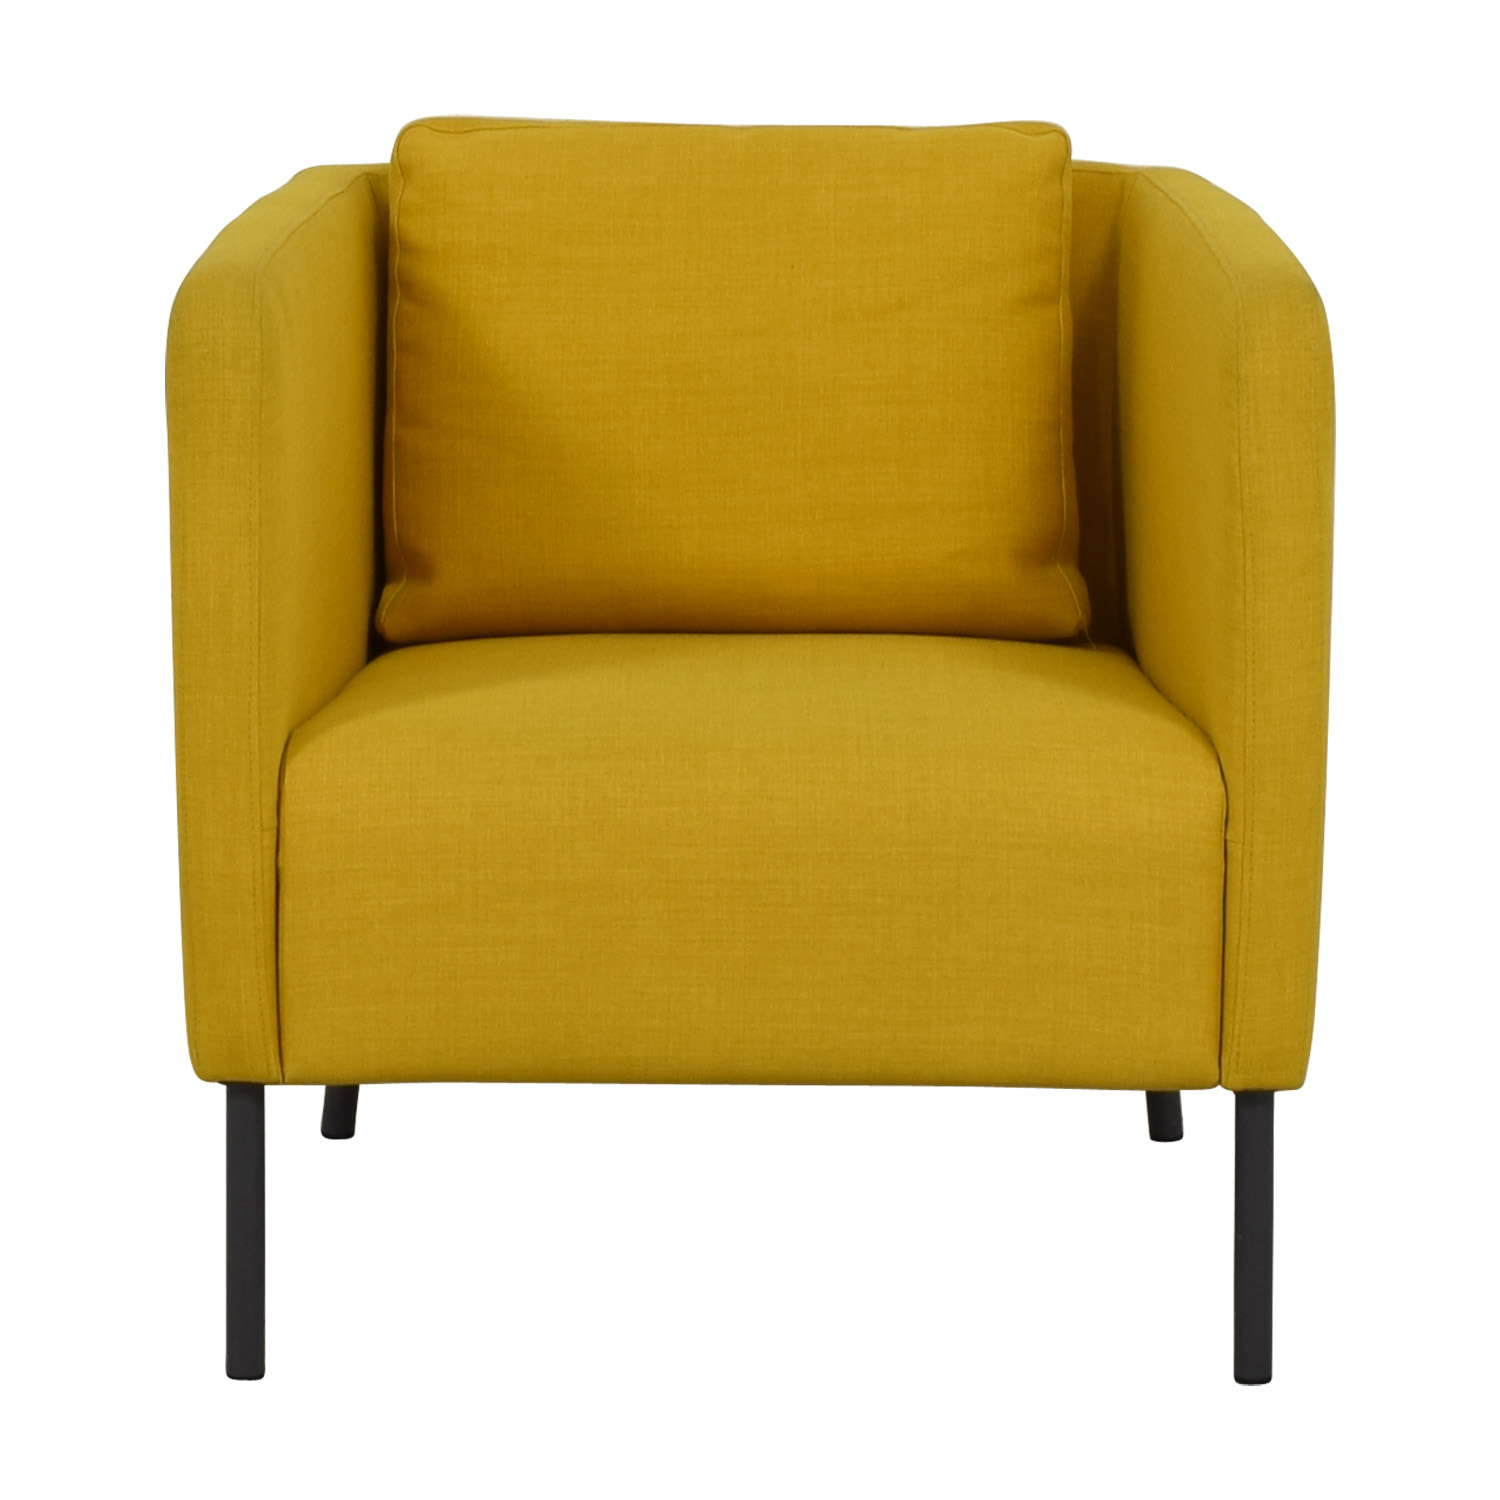 IKEA Ekero Maize Armchair / Accent Chairs